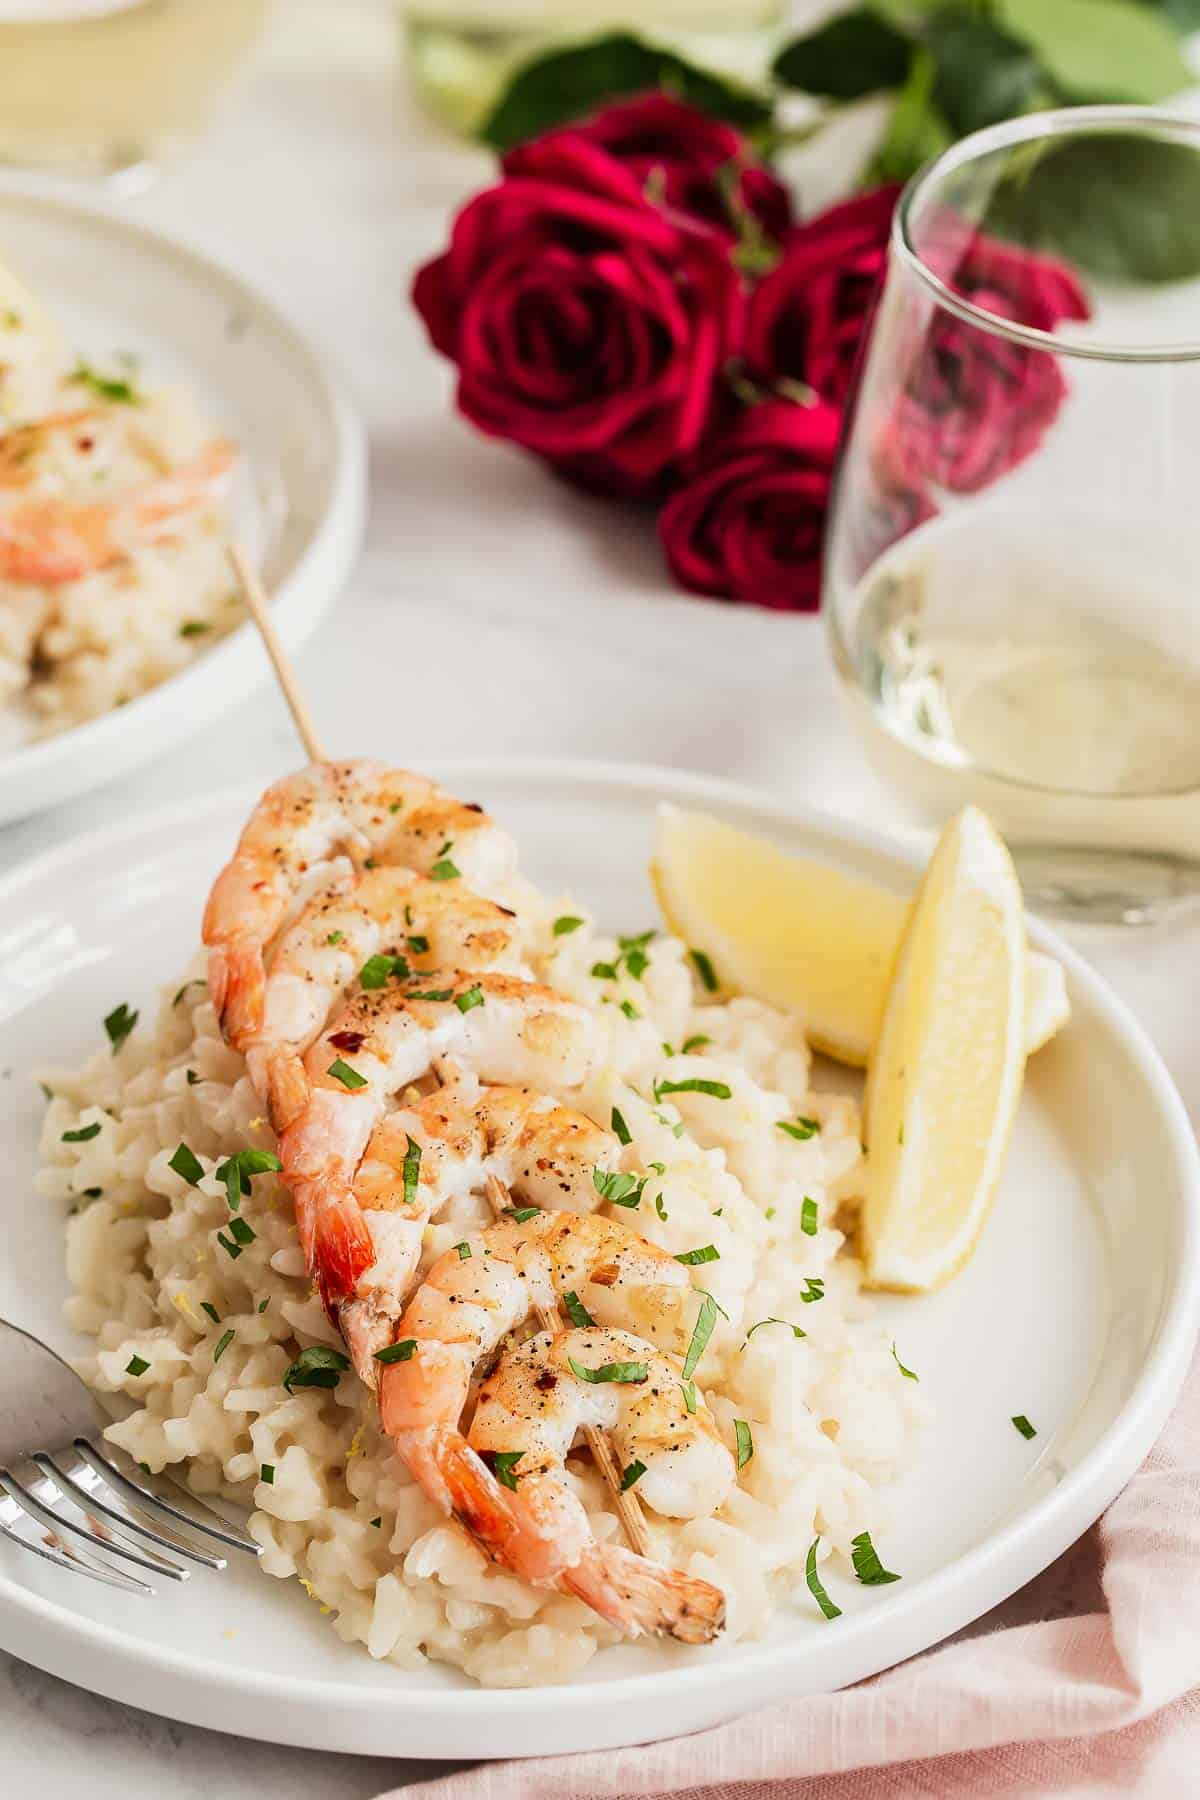 Two plate of lemon risotto with grilled shrimp on top